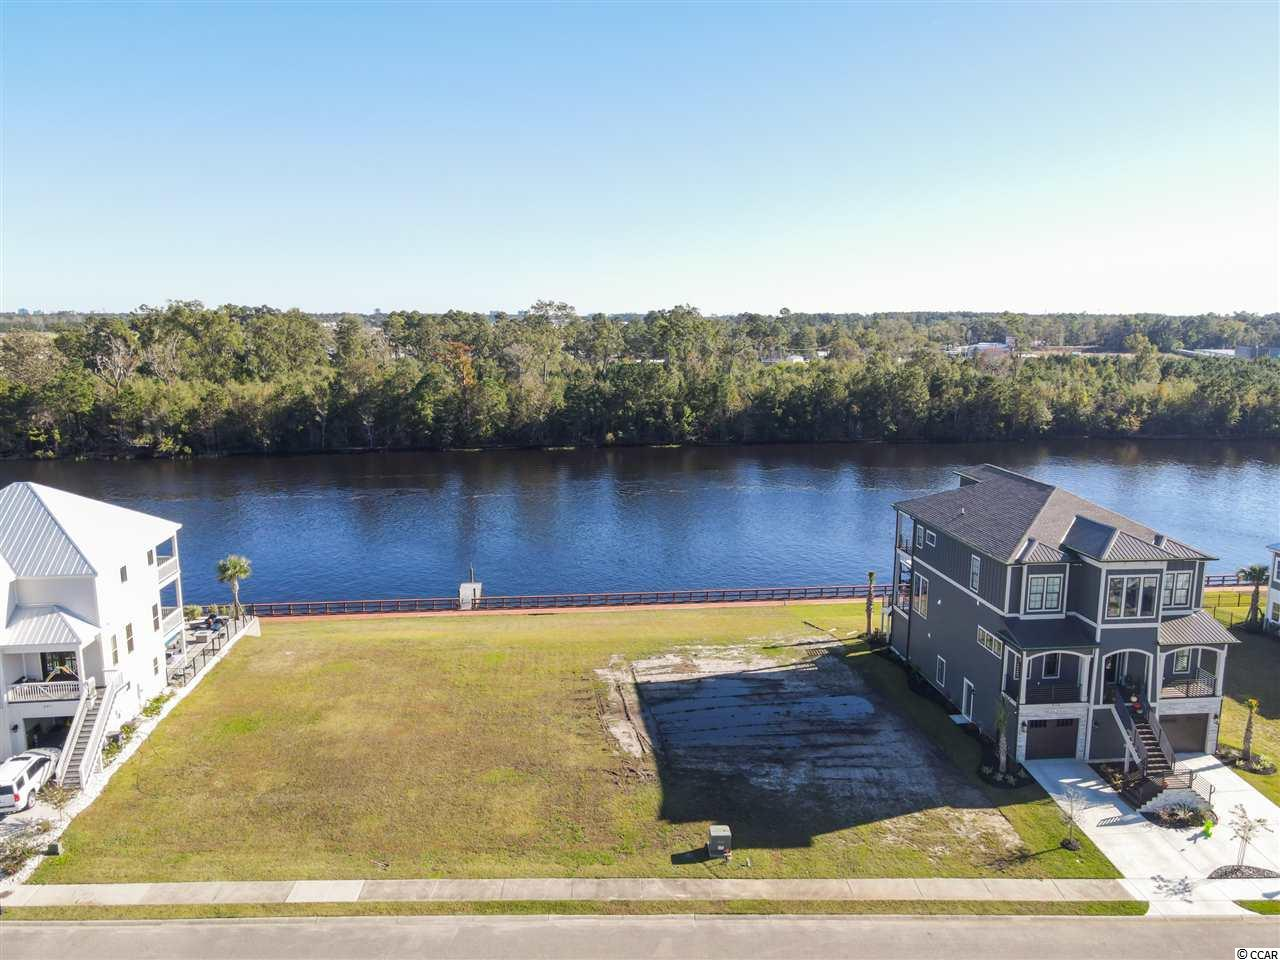 BEST lot for sale in the sought after Waterway Community Boardwalk on the Waterway!. Conveniently located minutes to the airport, beach and all that Myrtle Beach and surrounding areas have to offer. Lot is located at the back of the community out of the flight path and less through traffic. Also located close to the private boat launch and storage area. These lots have been going up in price due to low inventory and priced thousands less than other Intra coastal waterway community lots in the area. Purchase now with no timeframe to build your dream home!